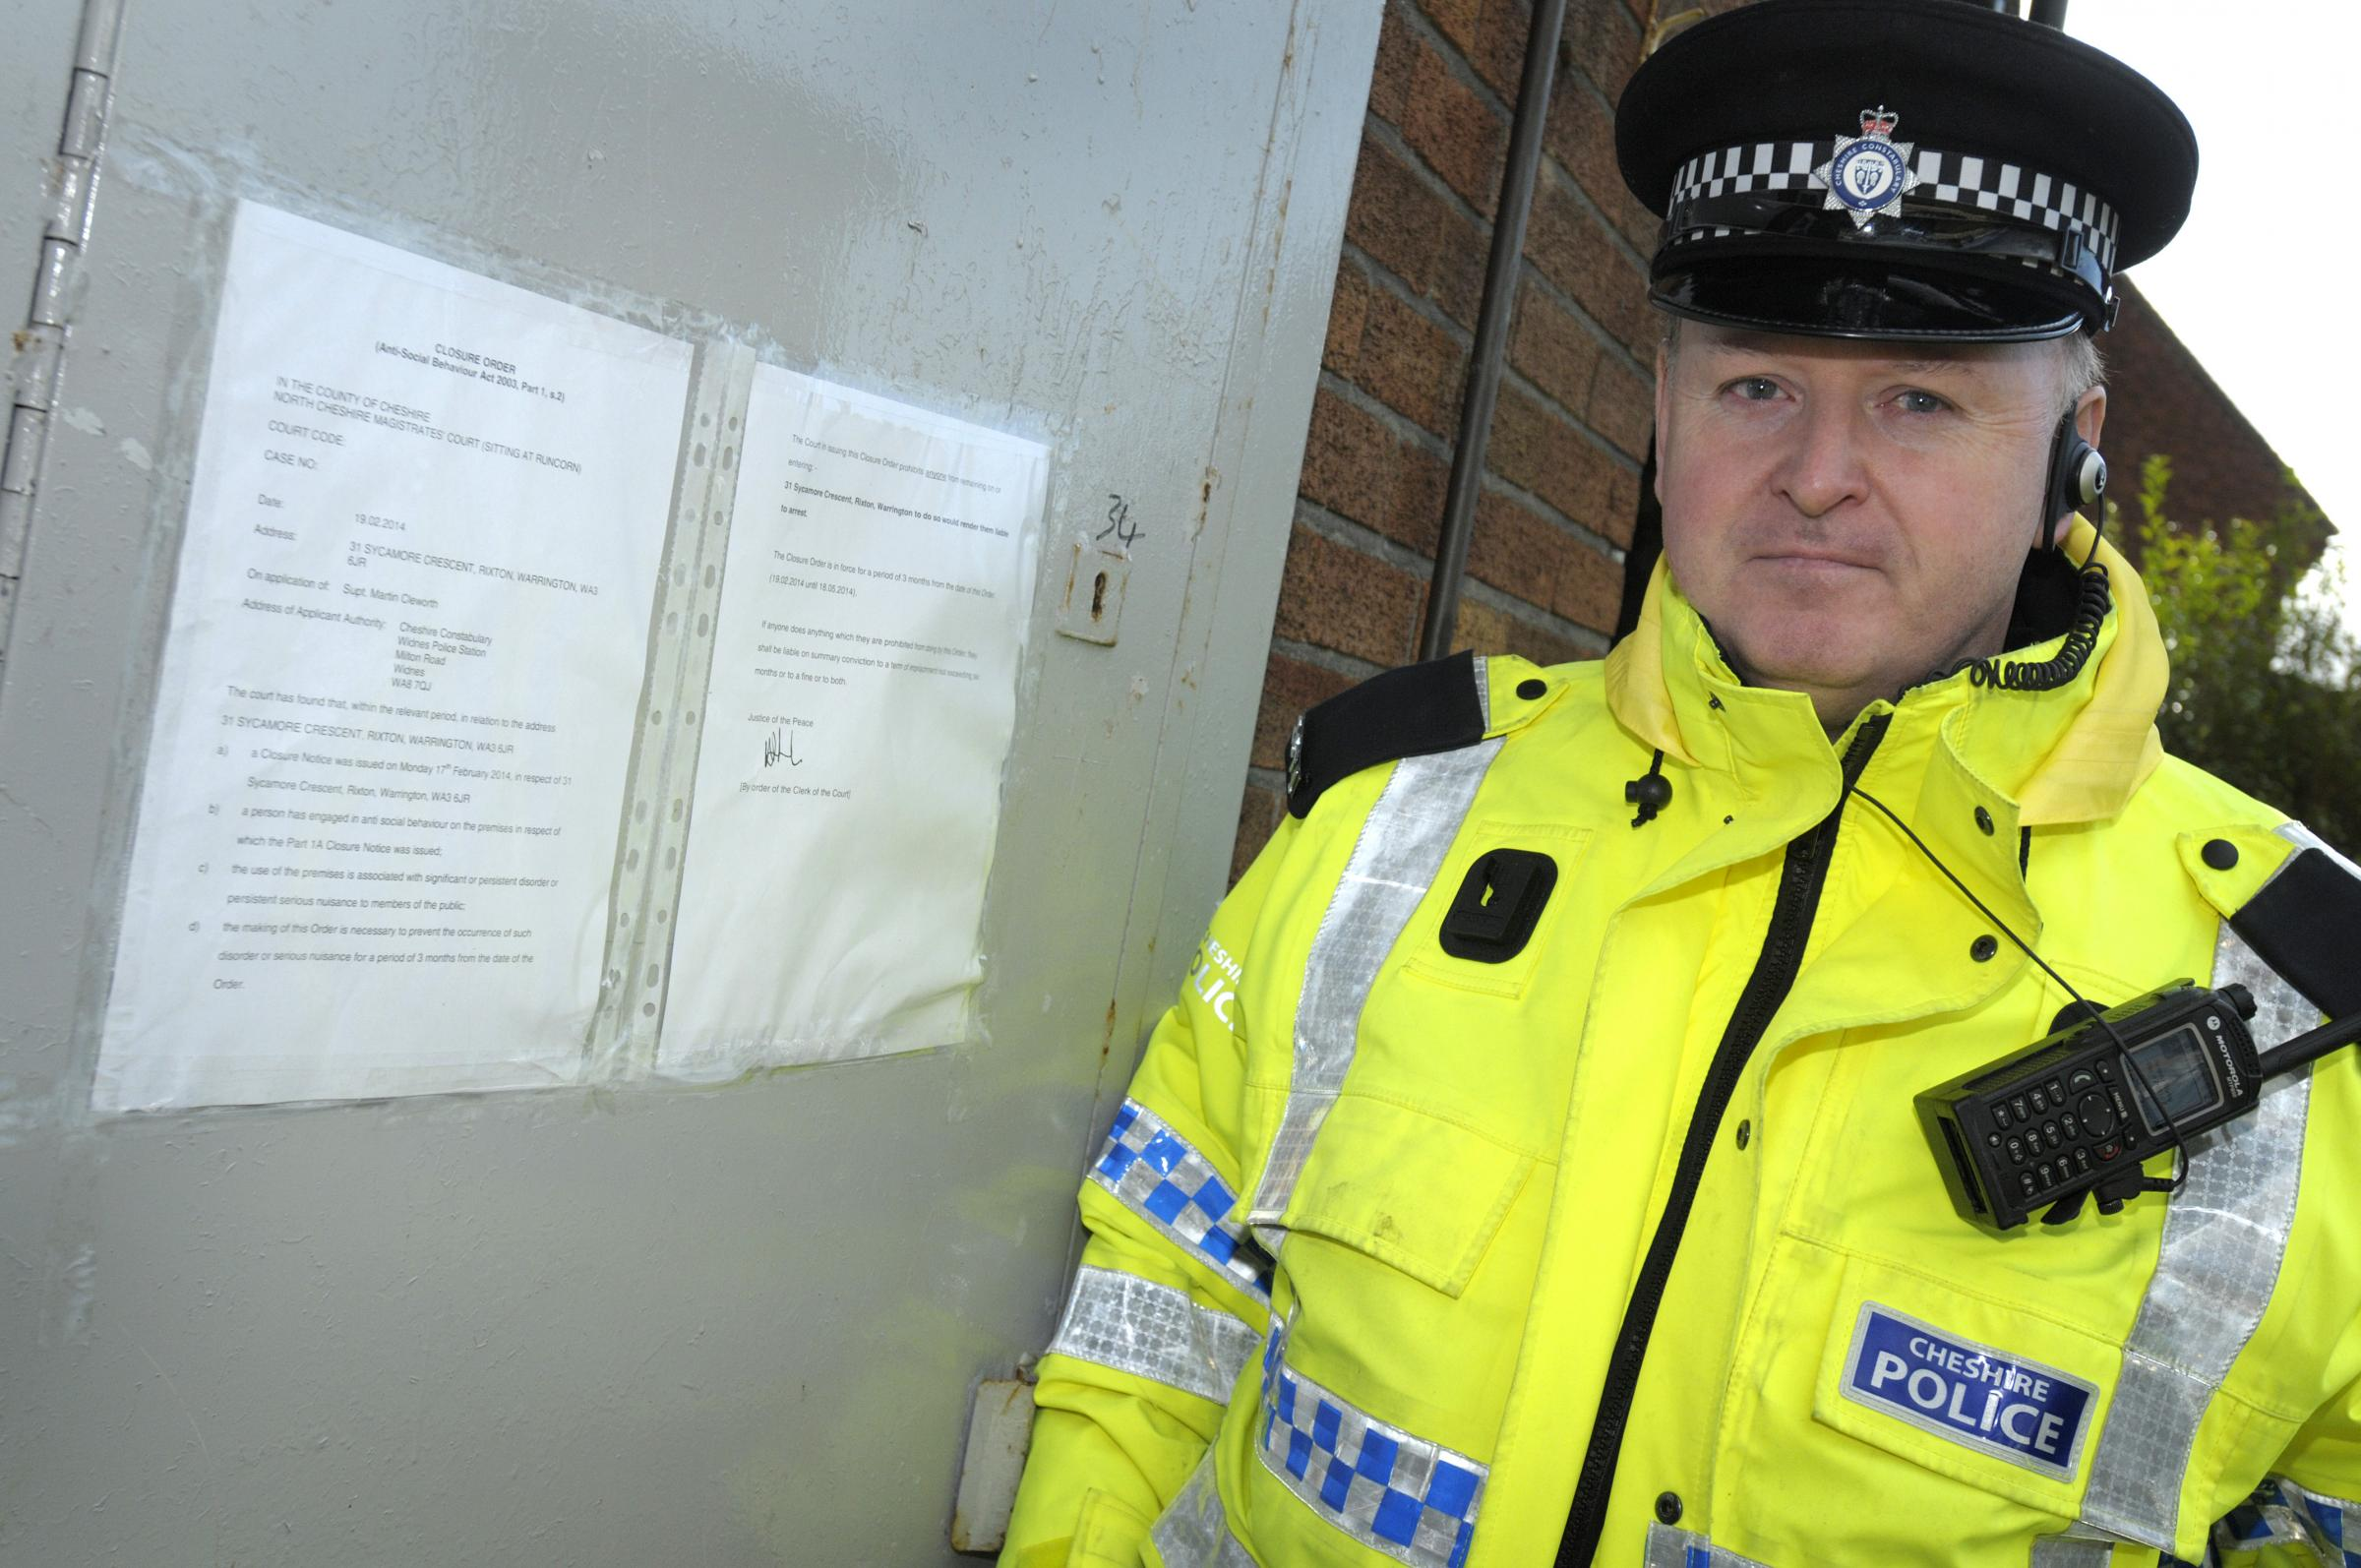 Police shut down 'neighbour from hell' house